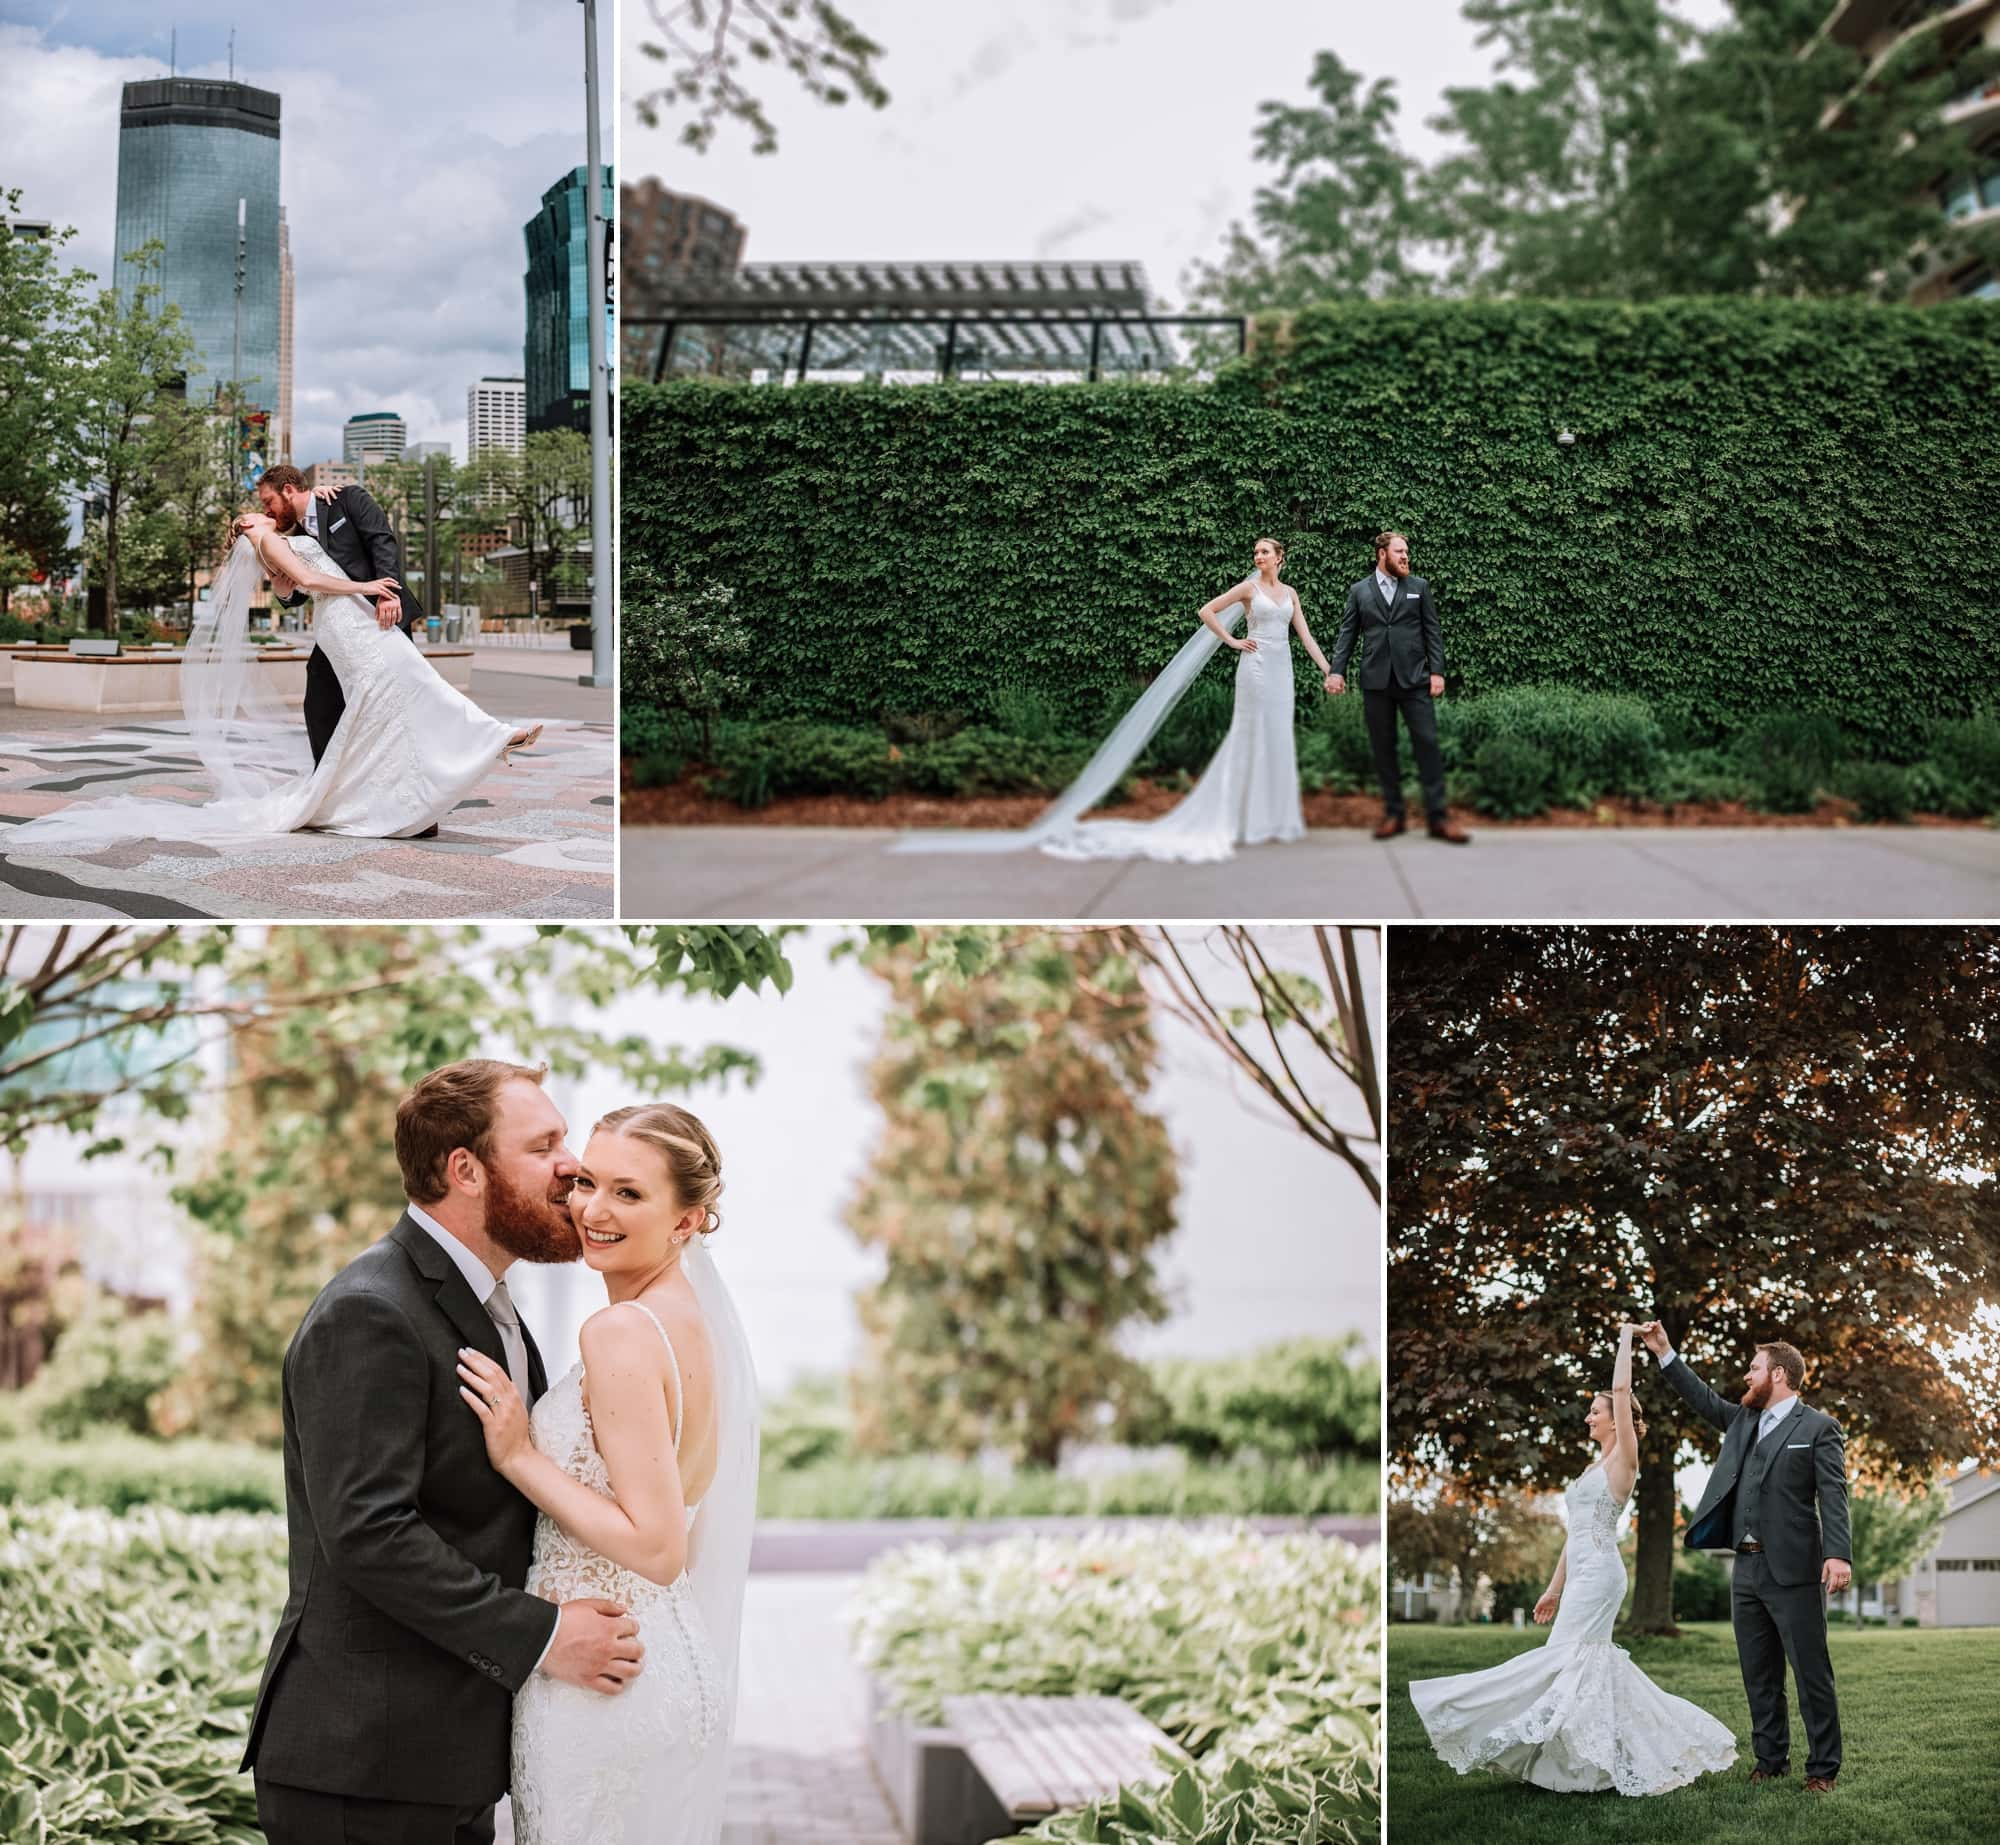 Gallery of wedding photography for Gretchen and Zach's downtown Minneapolis ceremony.